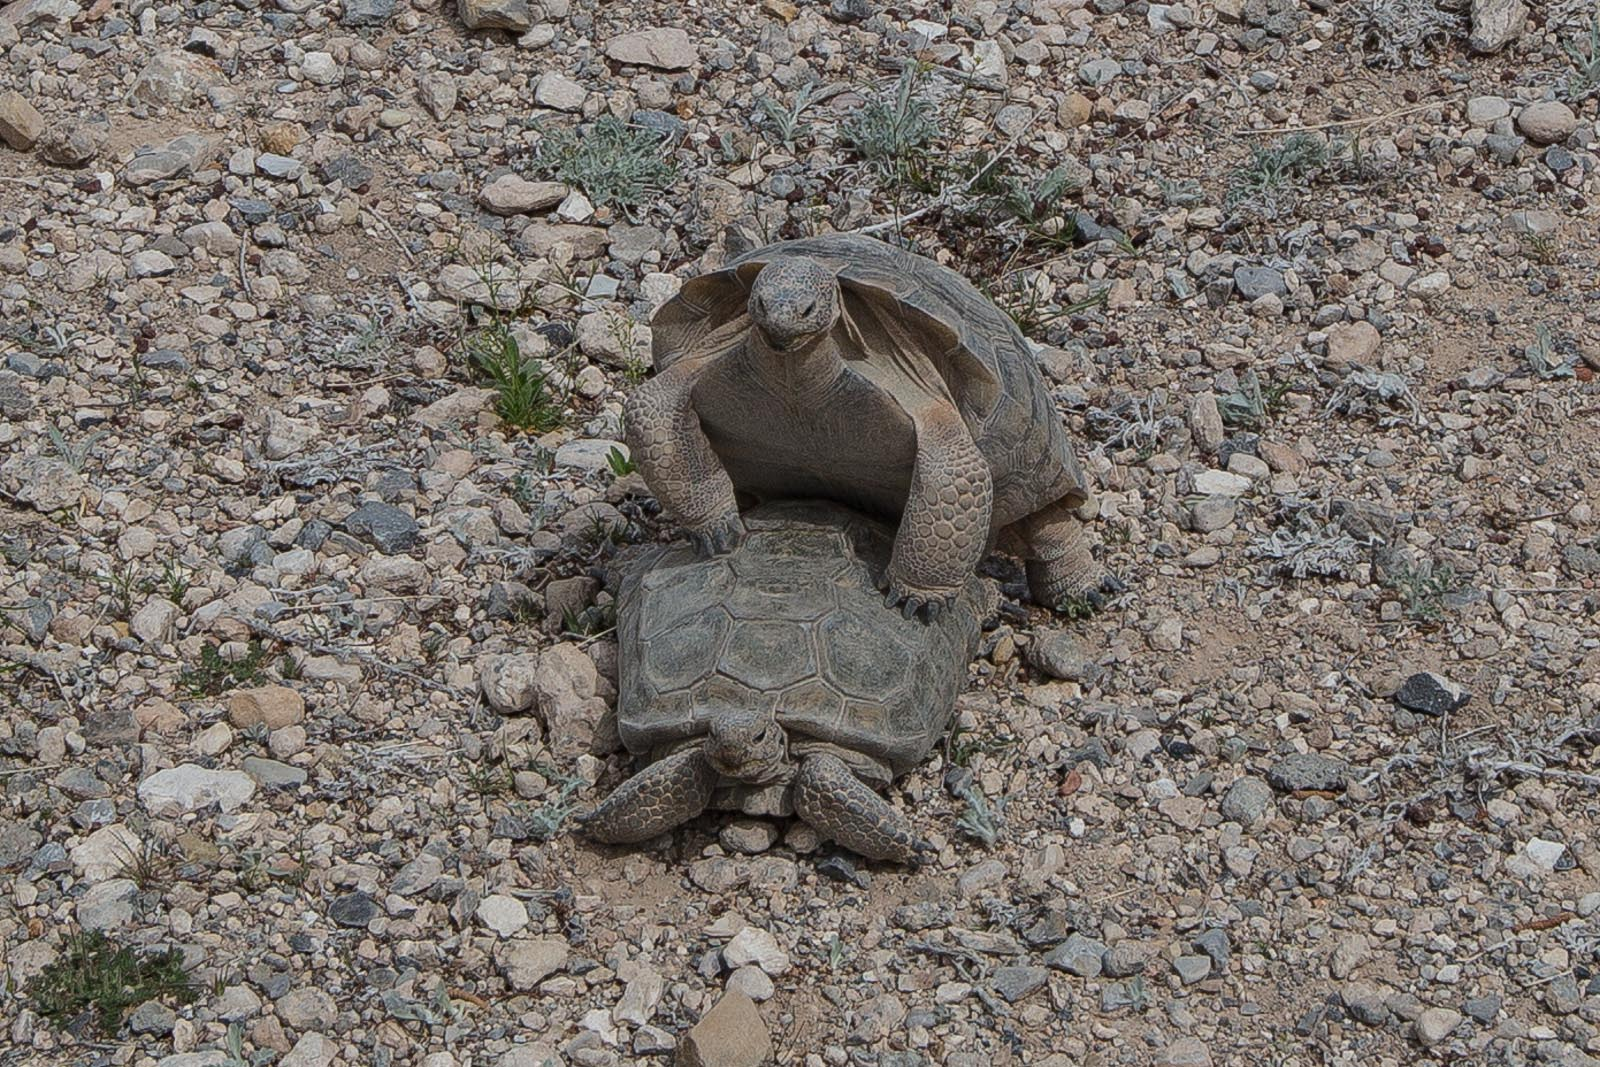 Tortoises are different from turtles. Go endangered species, go!